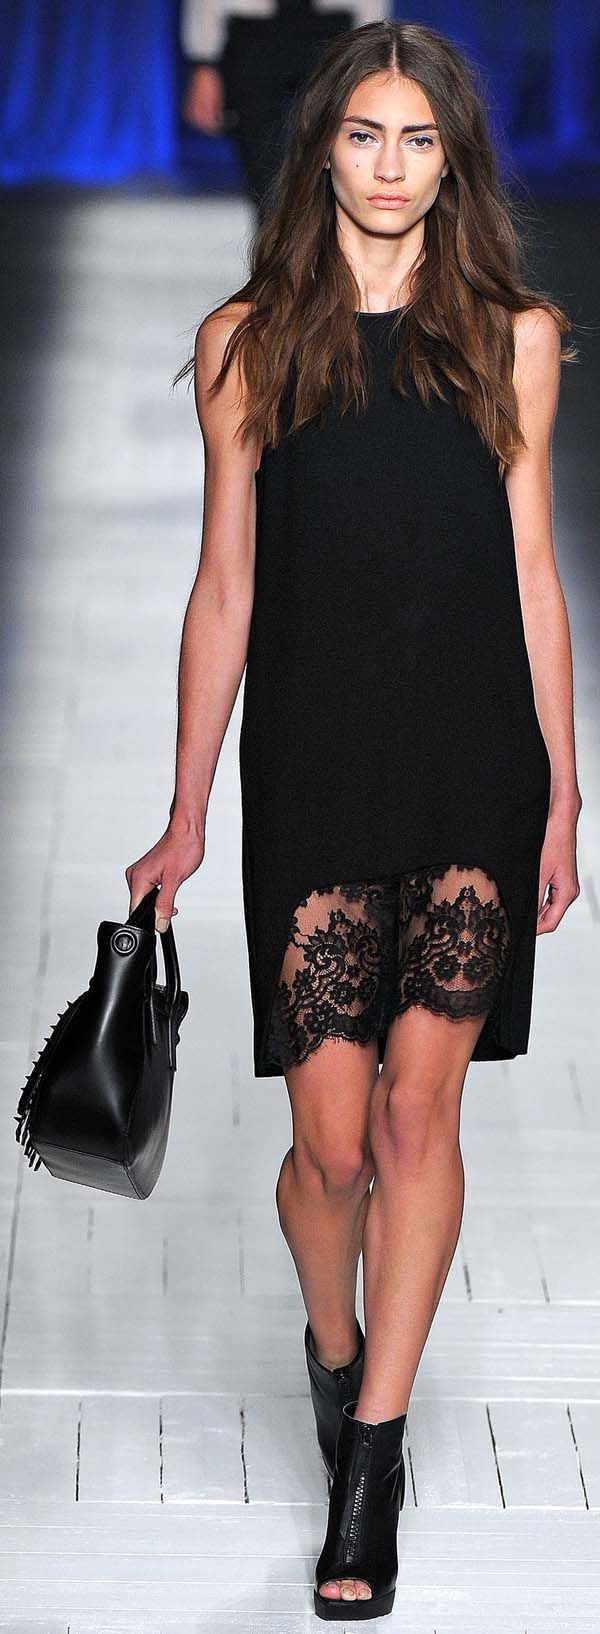 Just Cavalli Spring Summer 2013 Ready to Wear Collection - More Just Cavalli on Fashion Style Trends